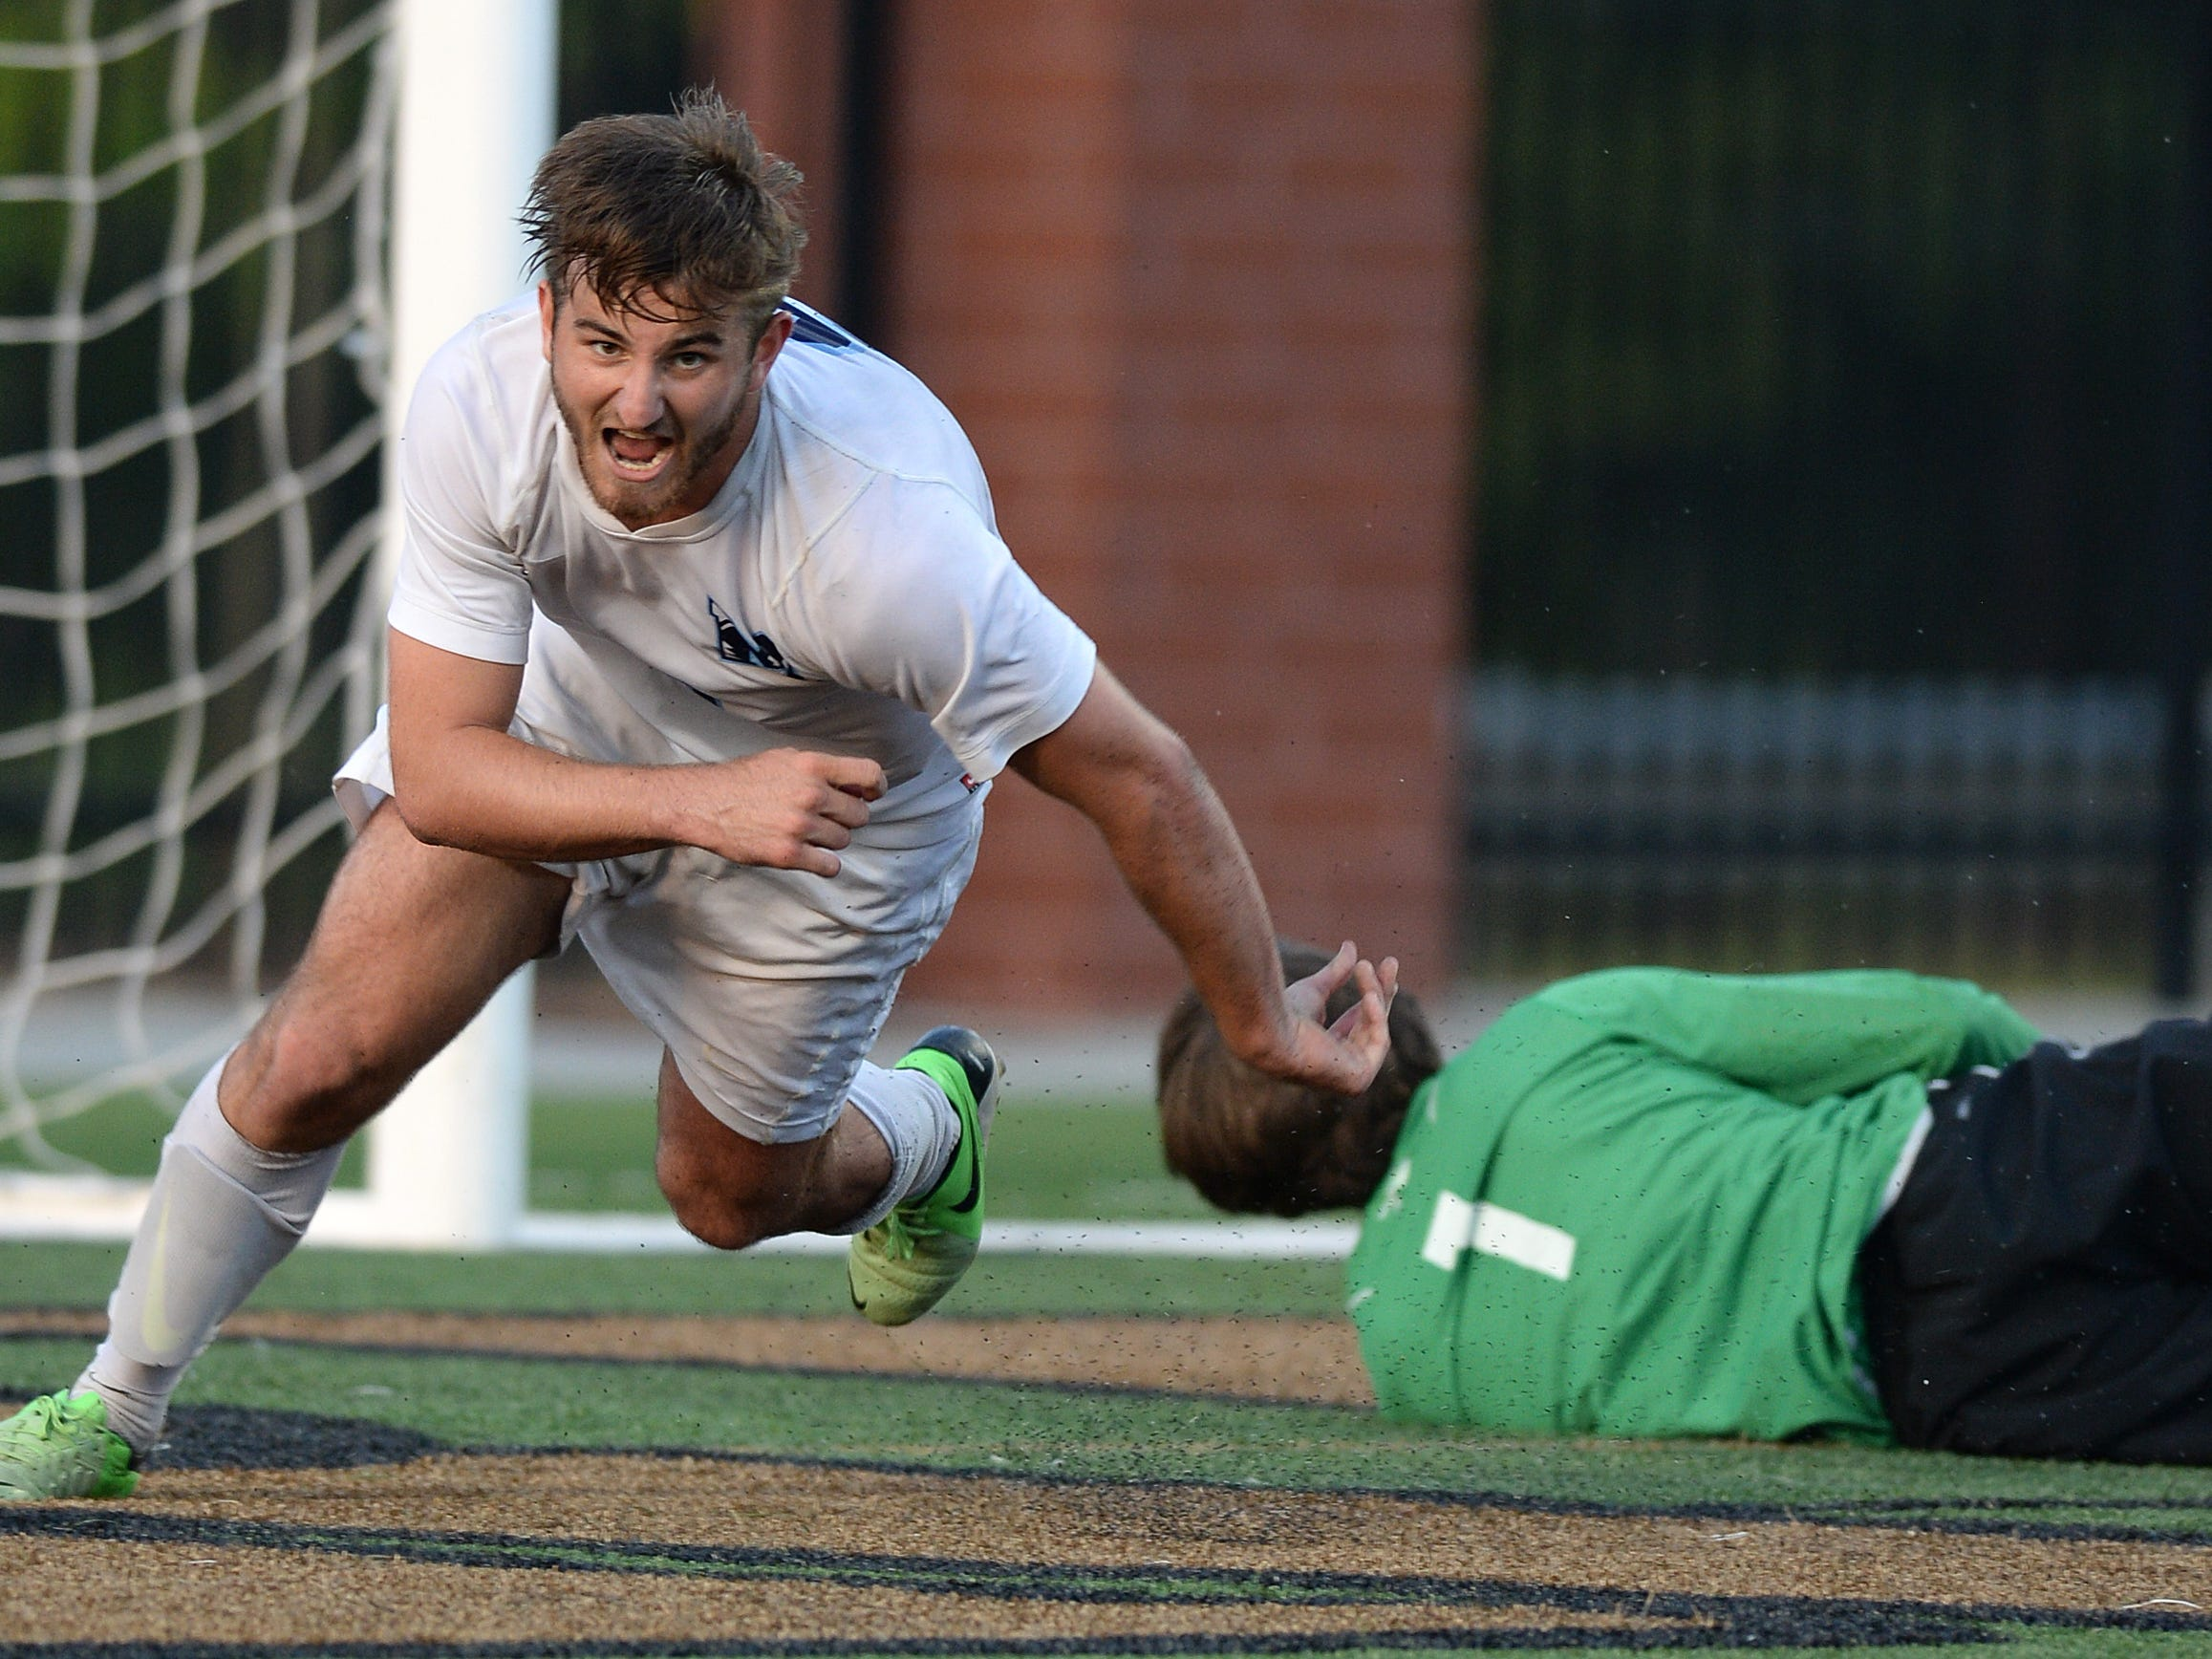 J.L. Mann's Michele Bottari (9) reacts after scoring against Wando in the boys AAAA State Championship game Saturday, May 16, 2015 at River Bluff High in Lexington.